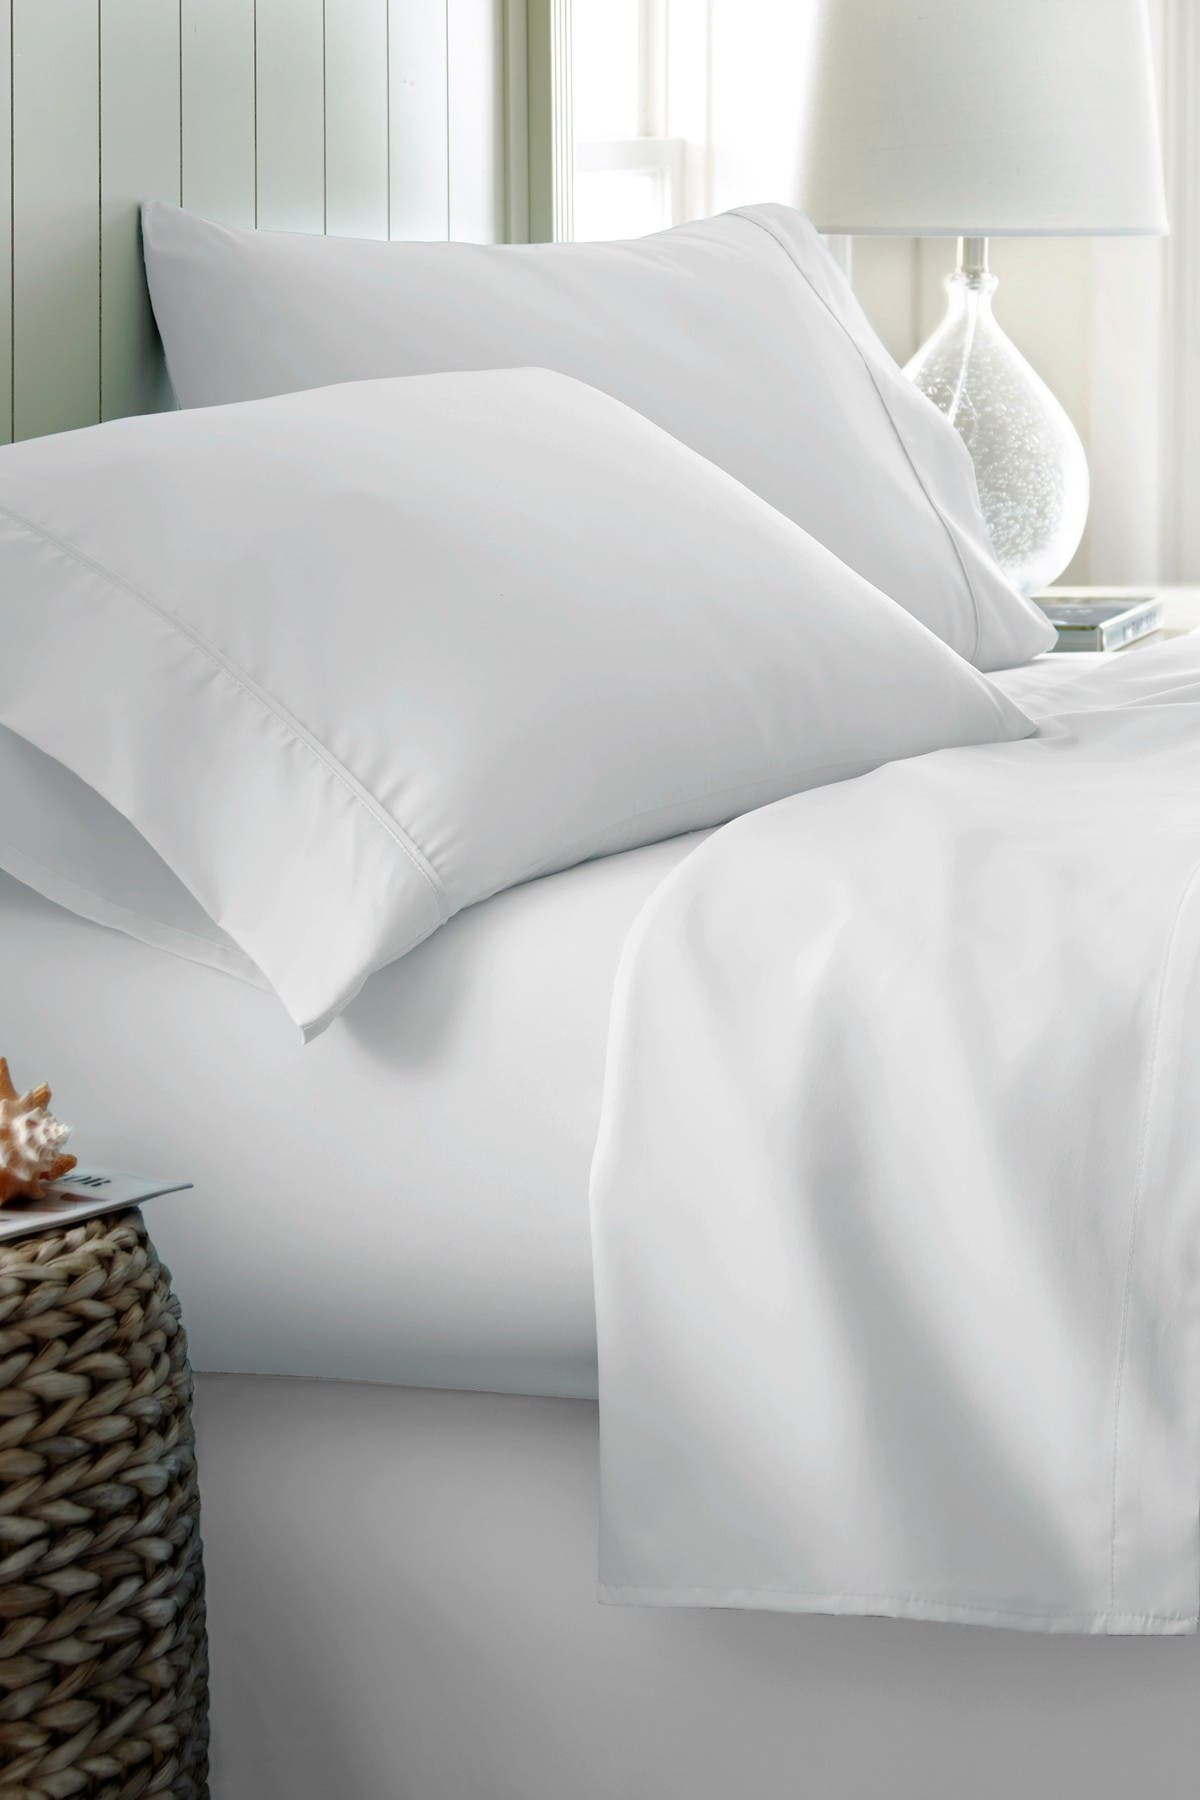 Image of IENJOY HOME California King Hotel Collection Premium Ultra Soft 4-Piece Bed Sheet Set - White